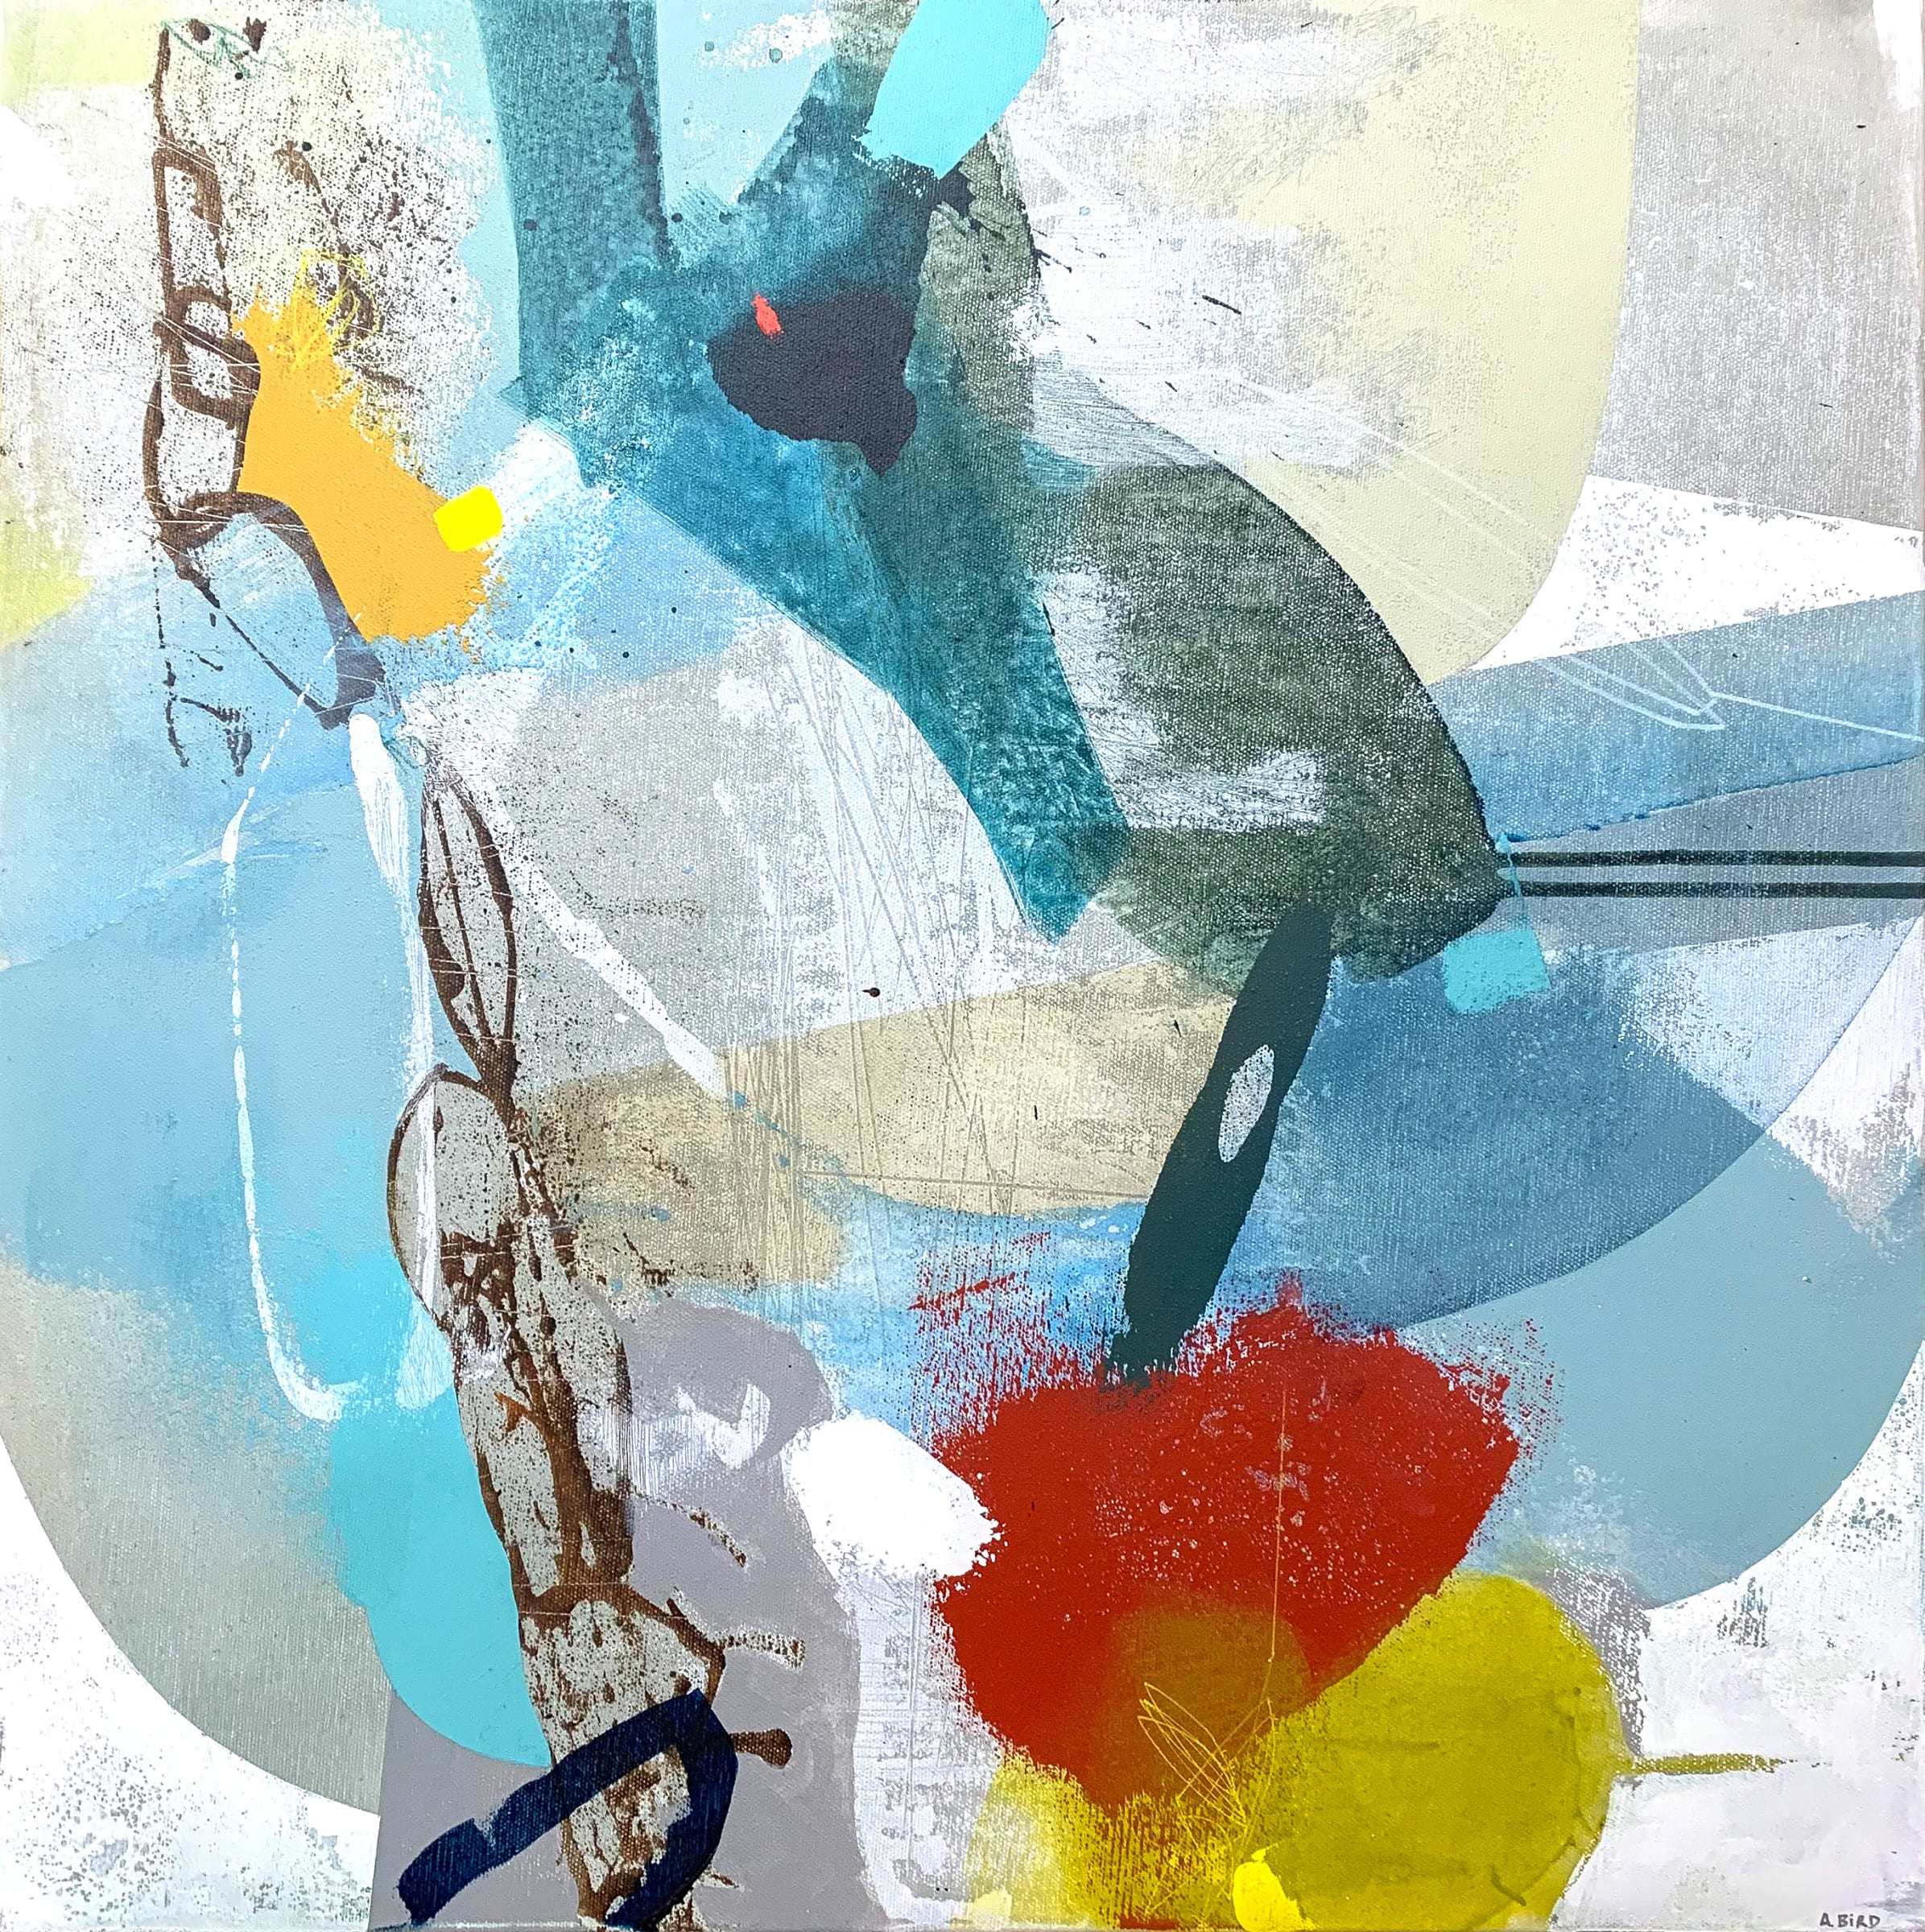 """<span class=""""link fancybox-details-link""""><a href=""""/store/artworks/7979-andrew-bird-the-past-in-the-present-2021/"""">View Detail Page</a></span><div class=""""artist""""><strong>Andrew Bird</strong></div> b. 1969 <div class=""""title""""><em>The Past in the Present</em>, 2021</div> <div class=""""medium"""">acrylic on canvas</div> <div class=""""dimensions"""">61 x 61 cm </div><div class=""""price"""">£1,850.00</div><div class=""""copyright_line"""">Own Art: £185 x 10 Months, 0% APR </div>"""